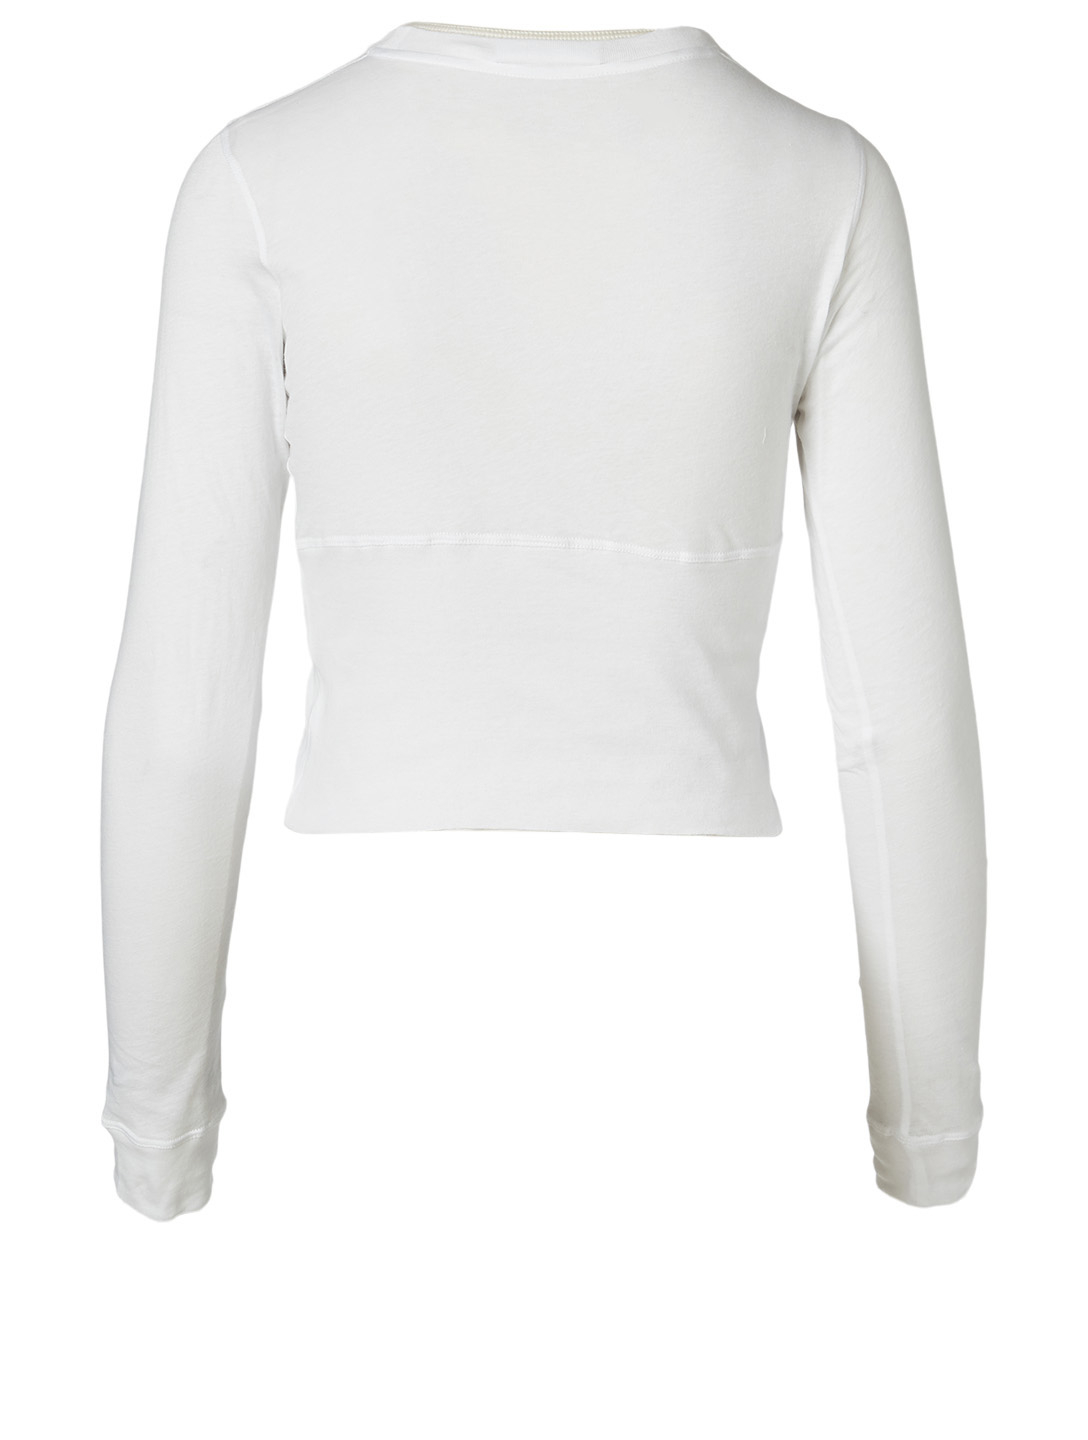 WARDROBE.NYC Cotton Long-Sleeve T-Shirt Women's White